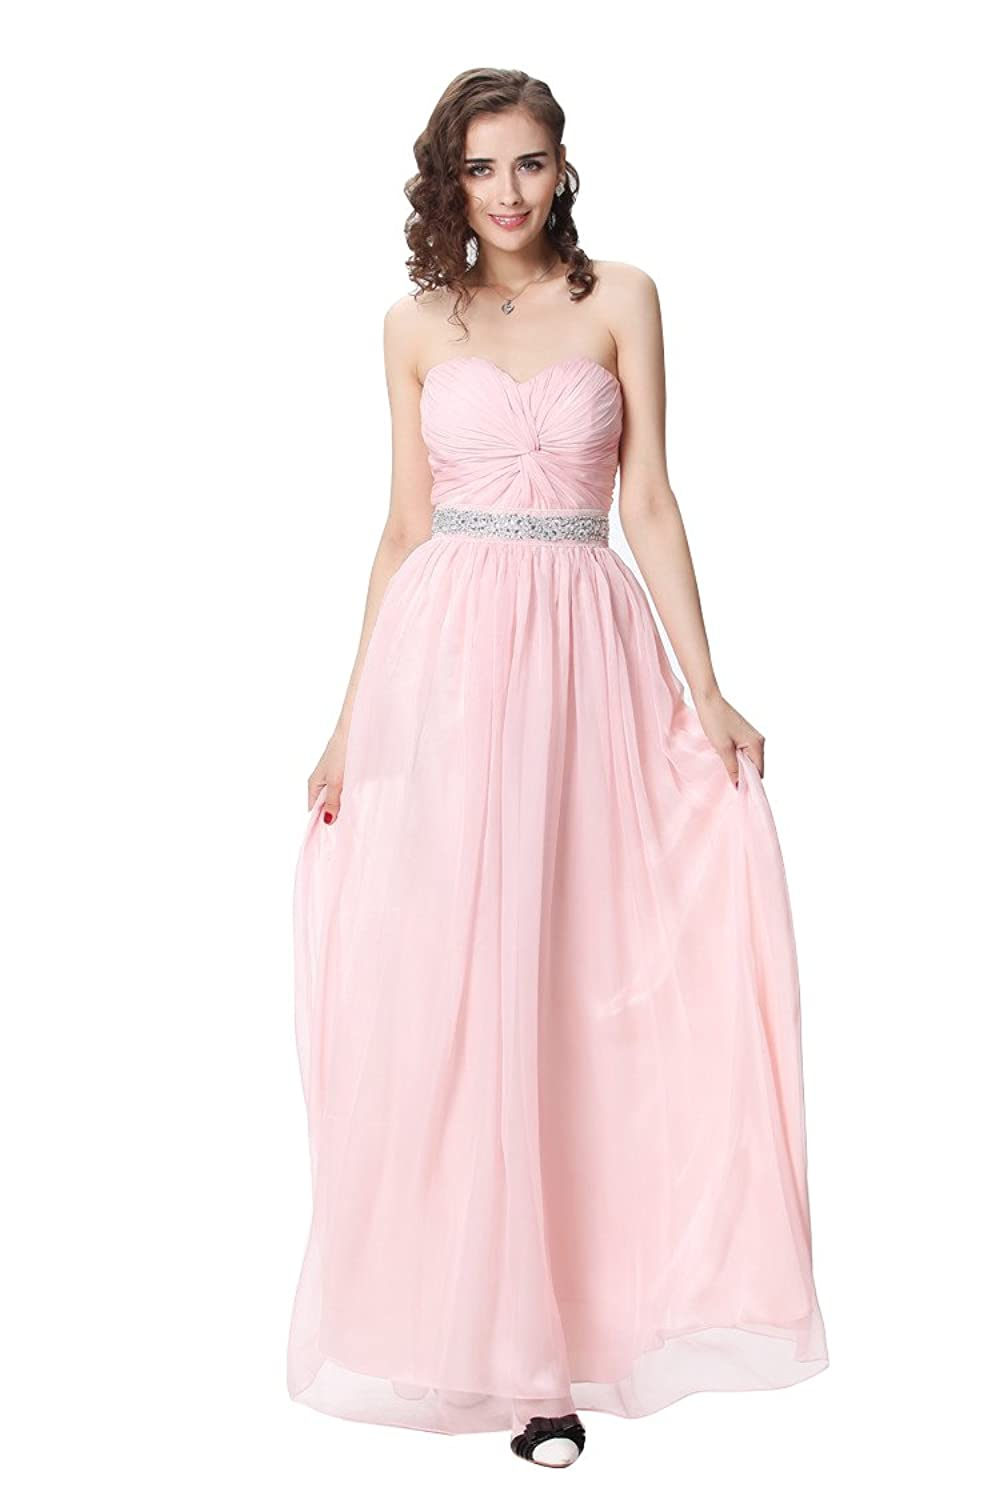 Dressesinstock Women's Strapless Sleeveless Chiffon Bridesmaid Dress